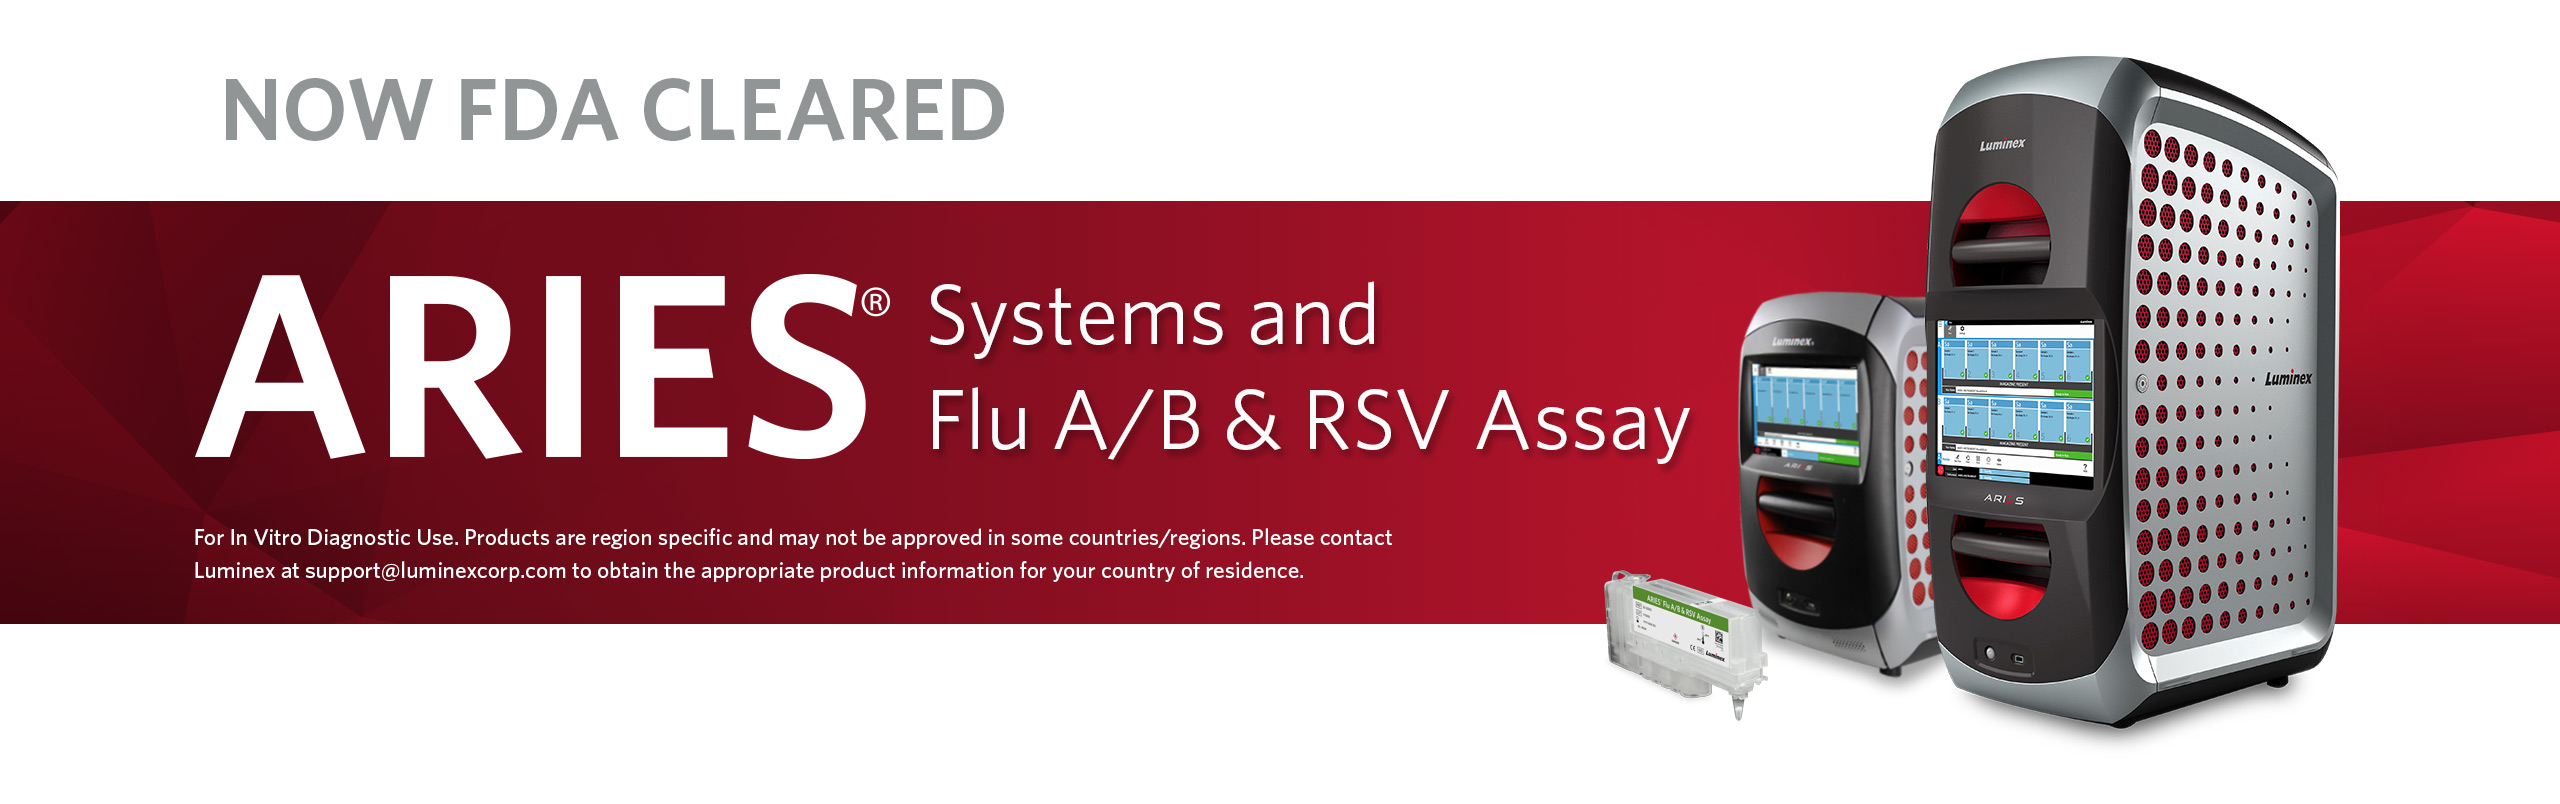 ARIES® Systems and Flu A/B & RSV Assay Now FDA Cleared